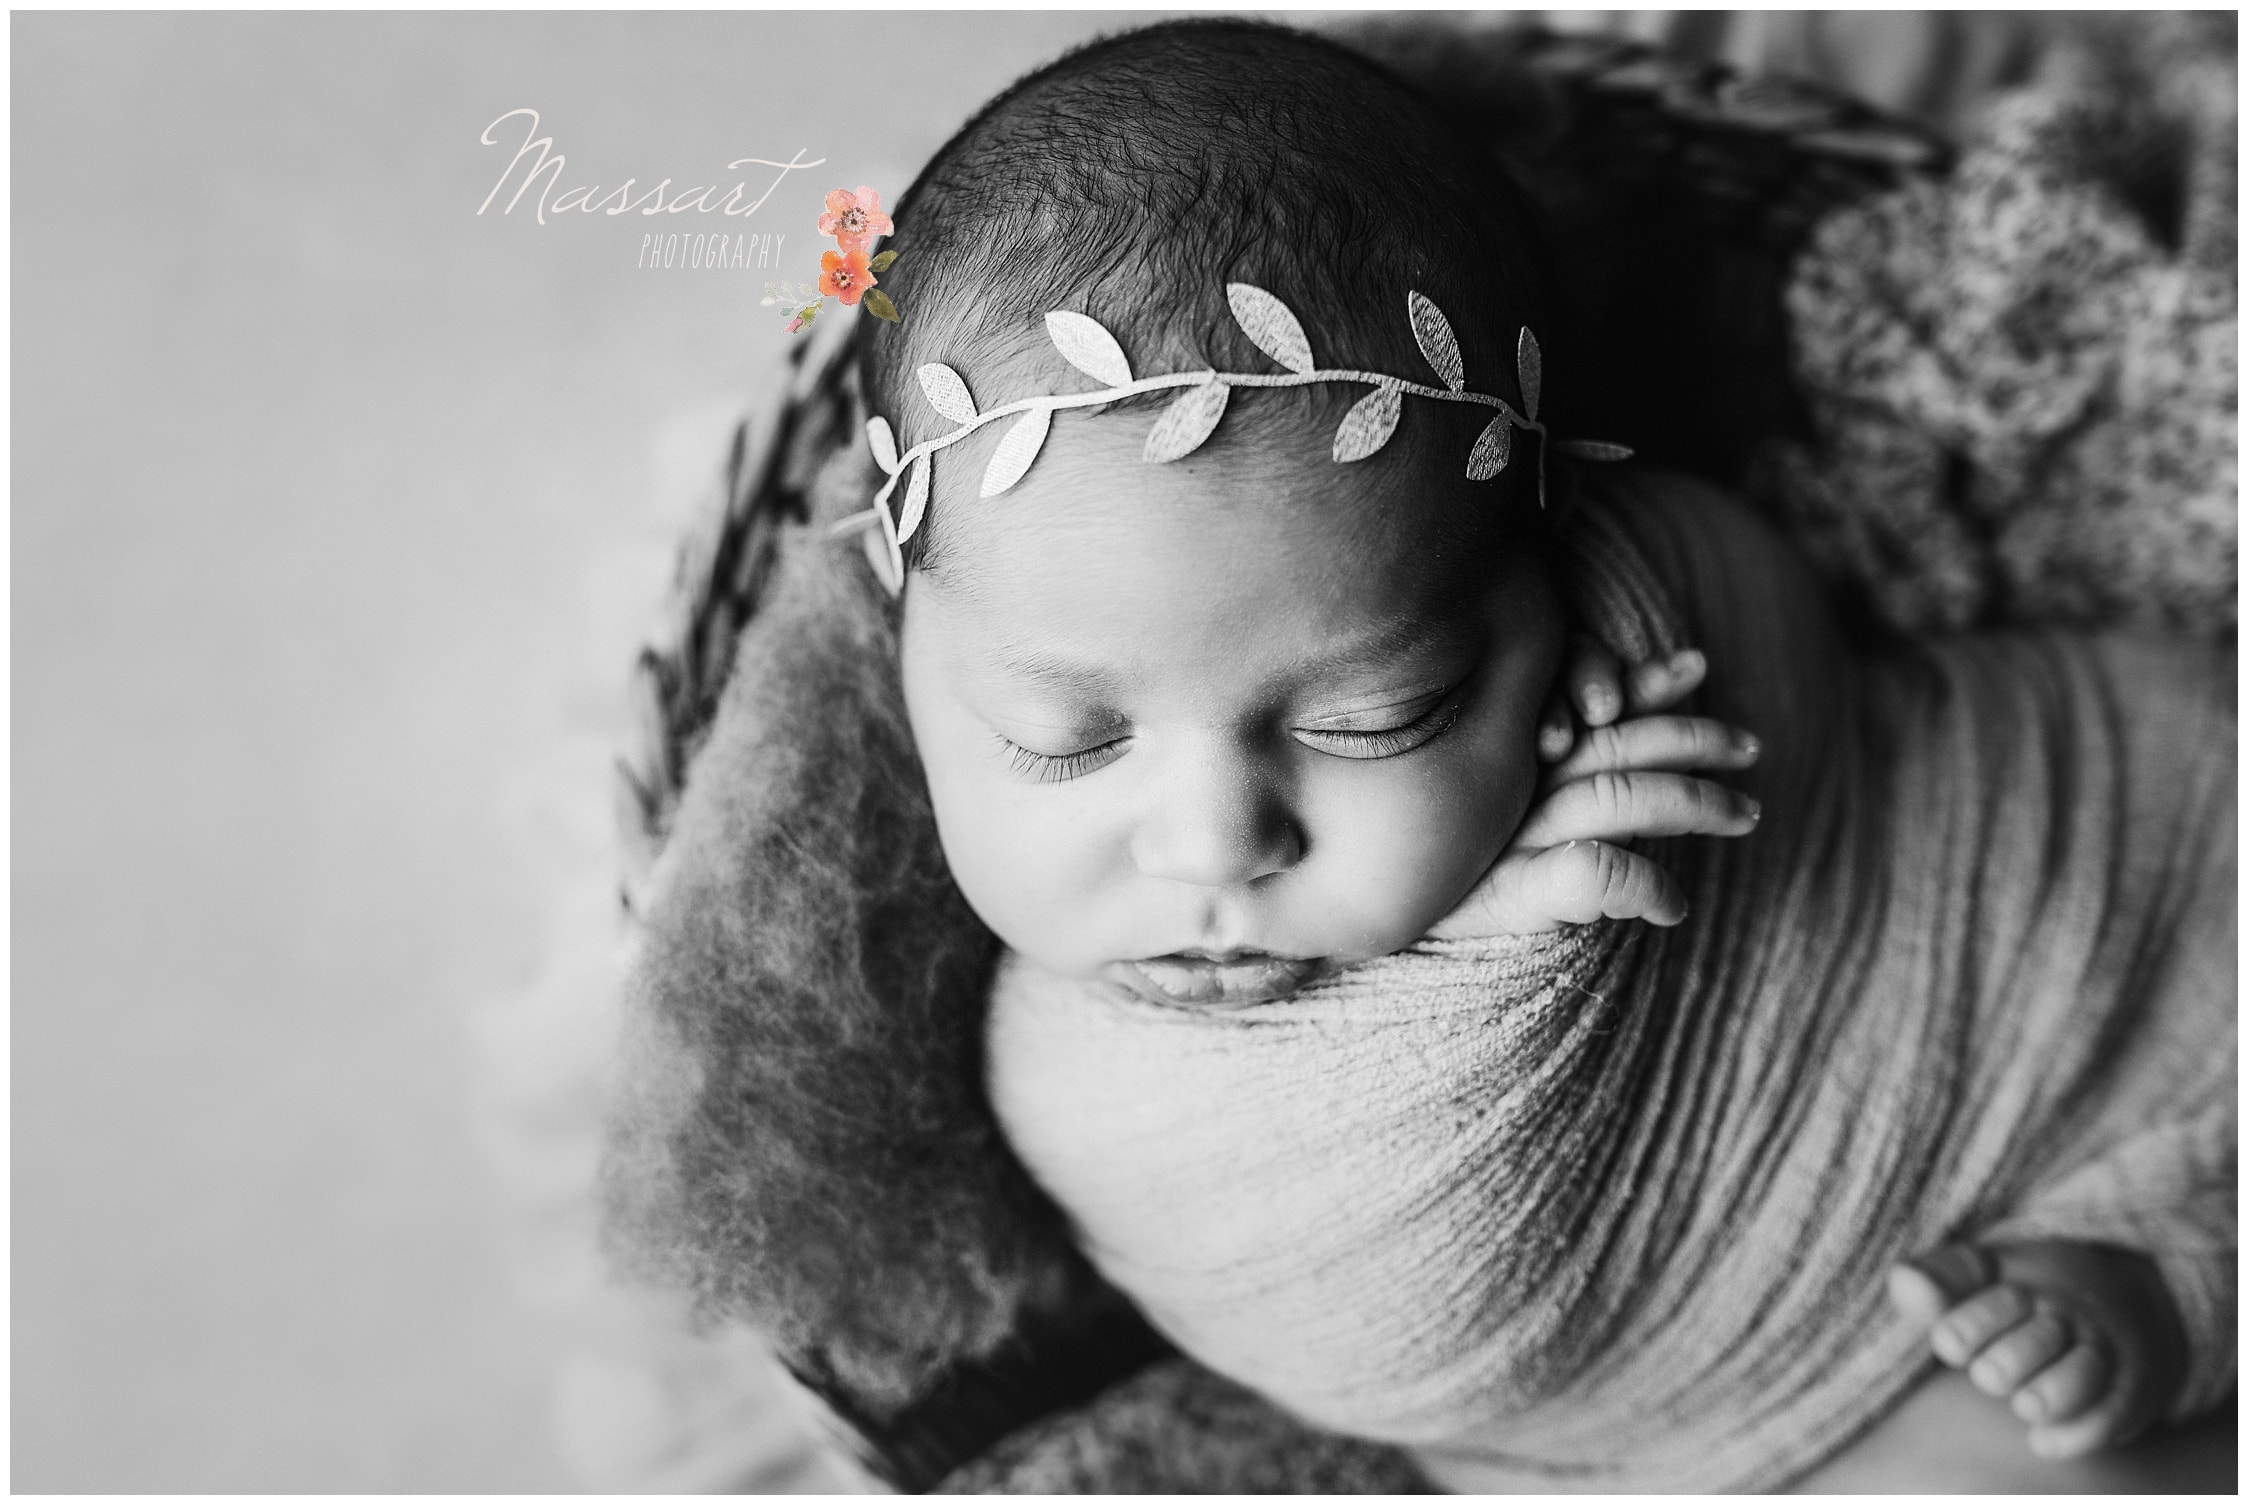 Newborn baby girl sleeps in a basket wrapped in a blanket photographed by Massart Photography Rhode Island